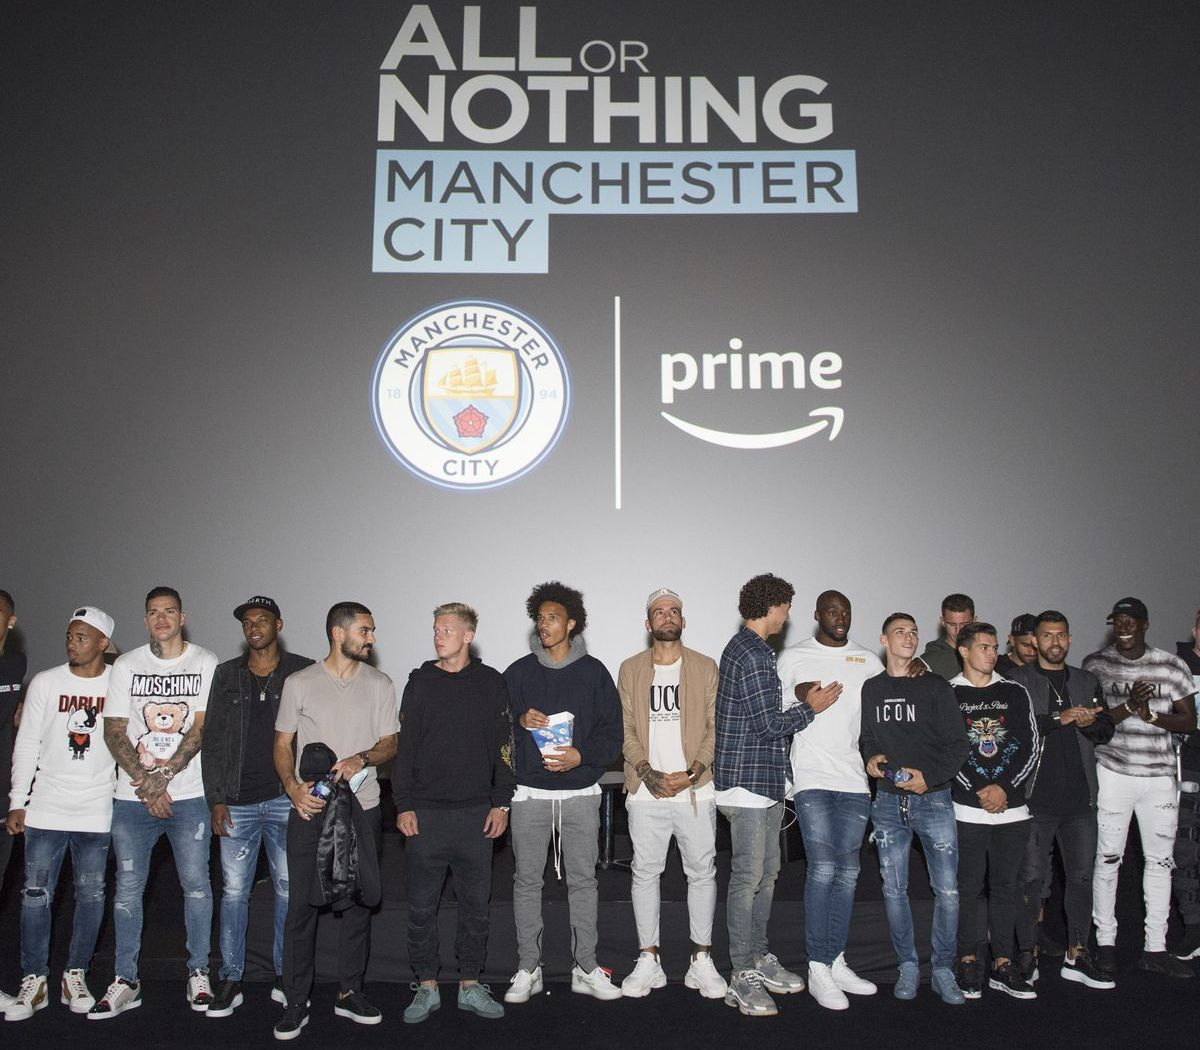 "Die Mannschaft von Manchester City bei der Premiere des Prime Originals ""All or Nothing: Manchester City""."